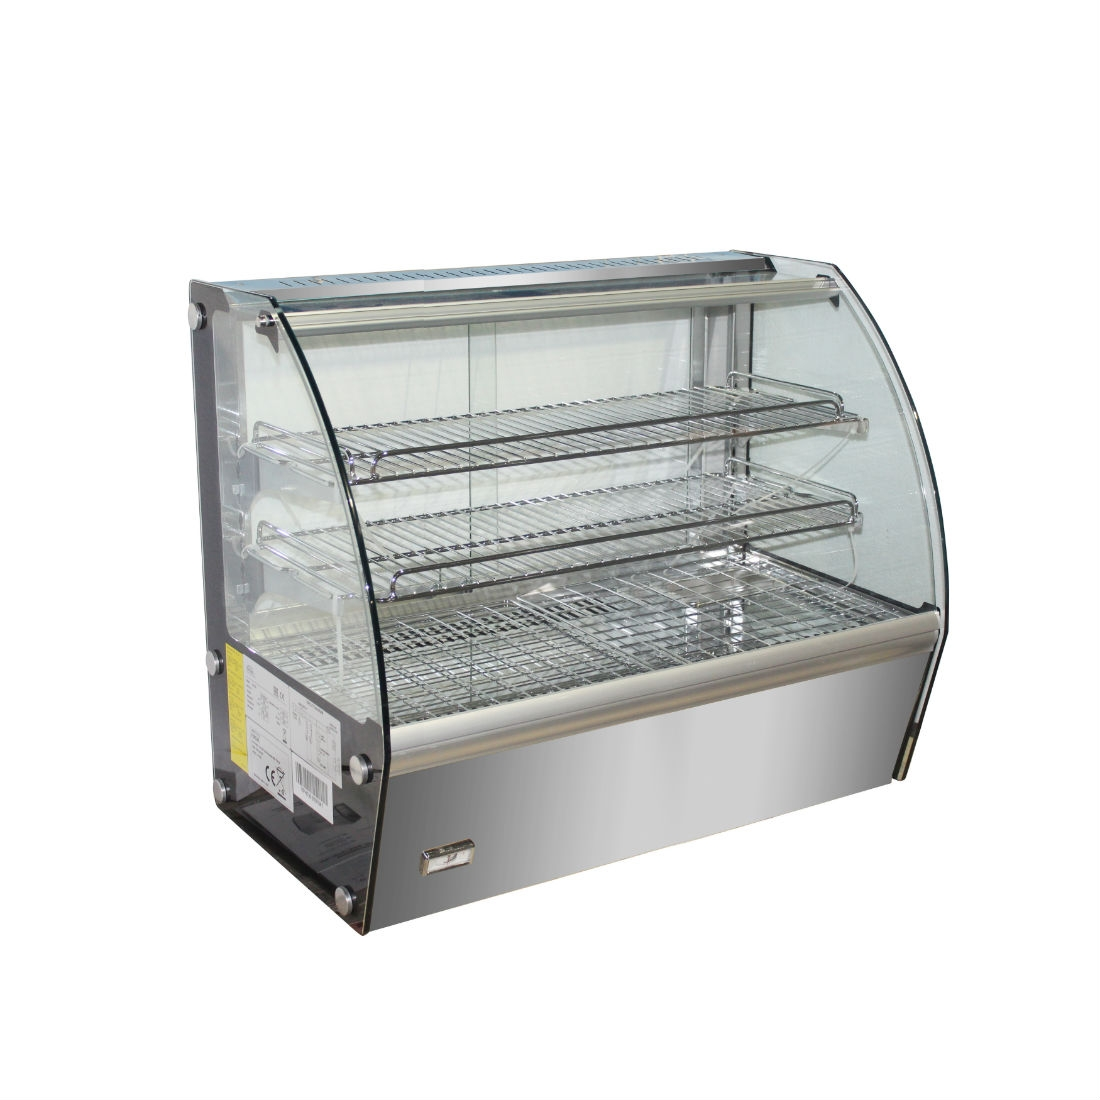 HTH160N - 160 litre Heated Counter-Top Food Display